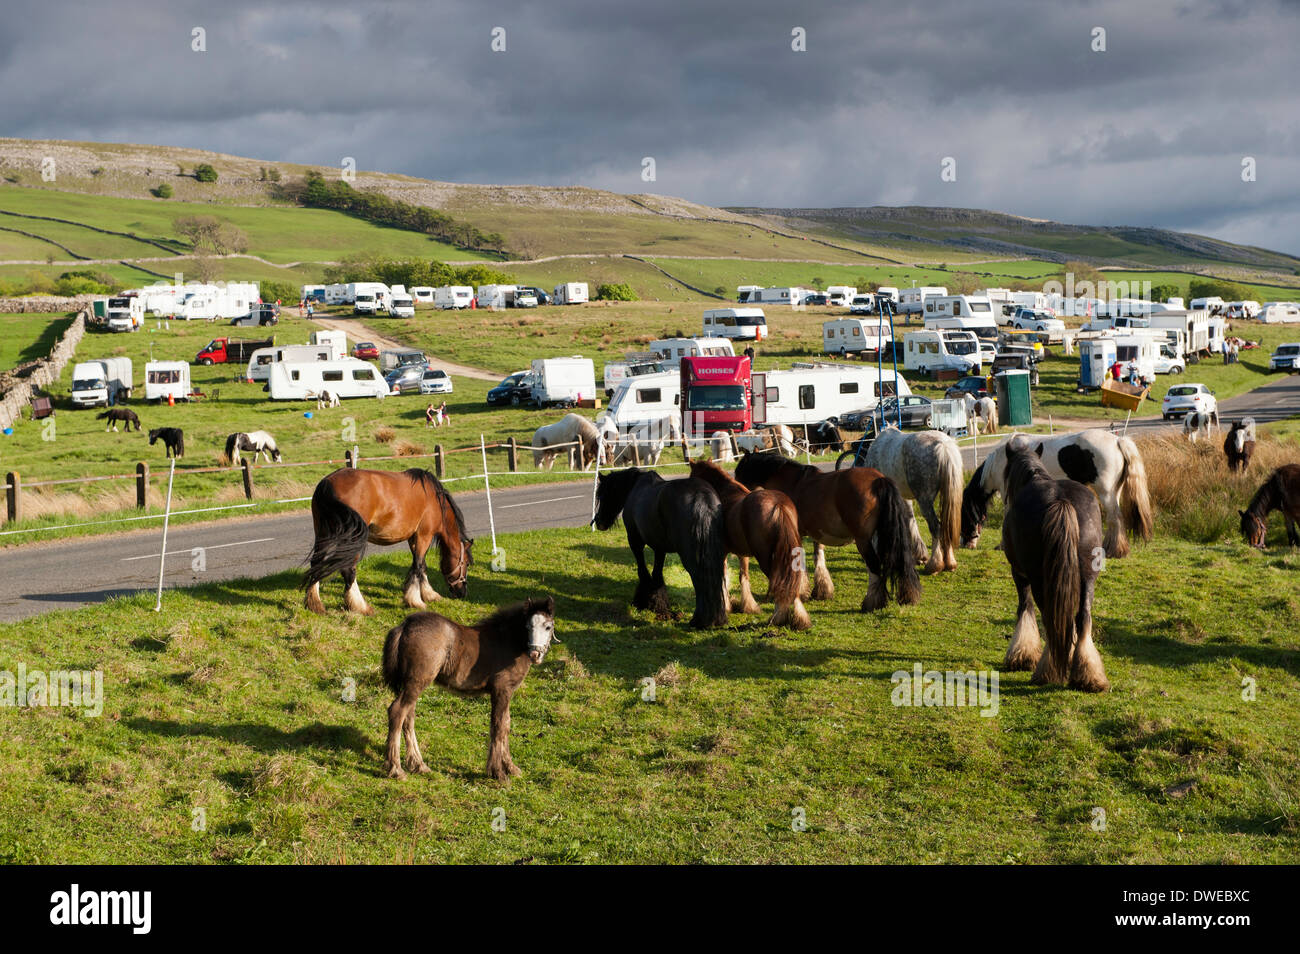 Gypsy camp on Cote Moor, Ravenstonedale, on way to Appleby horse fair in Cumbria - Stock Image